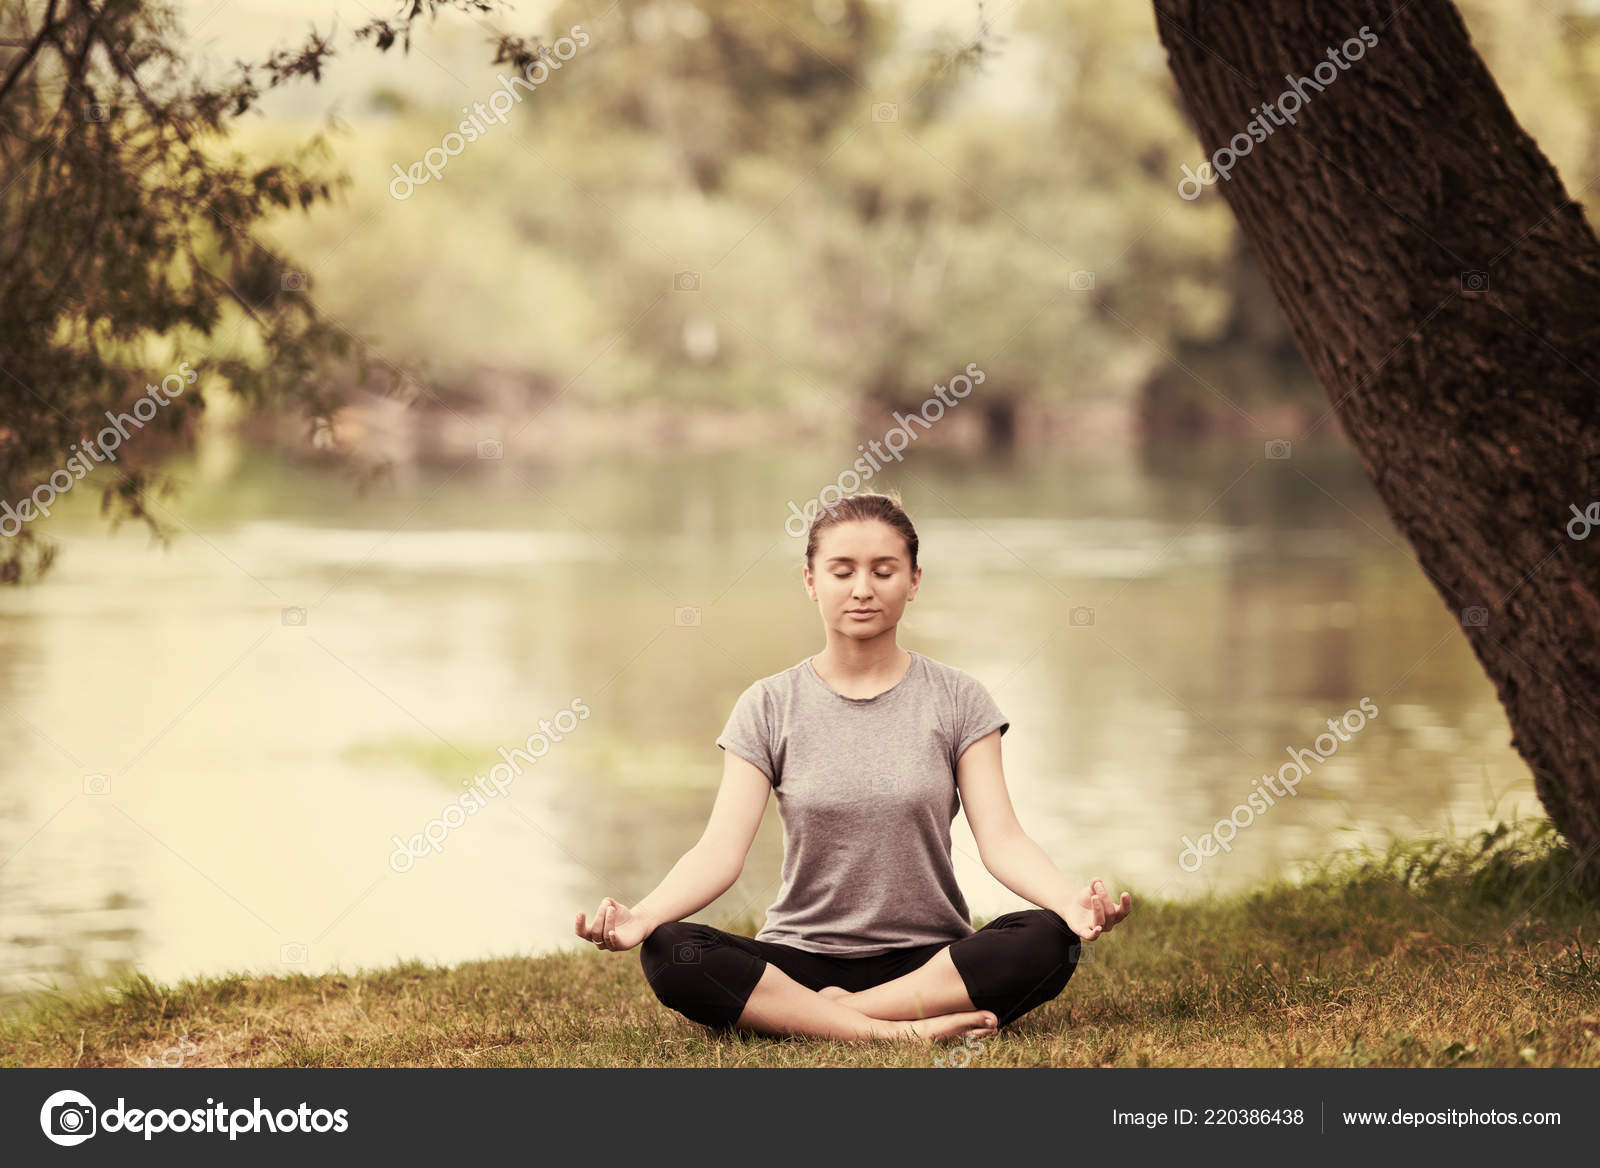 Healthy Woman Relaxing While Meditating Doing Yoga Exercise Beautiful Nature Stock Photo C Shock 220386438